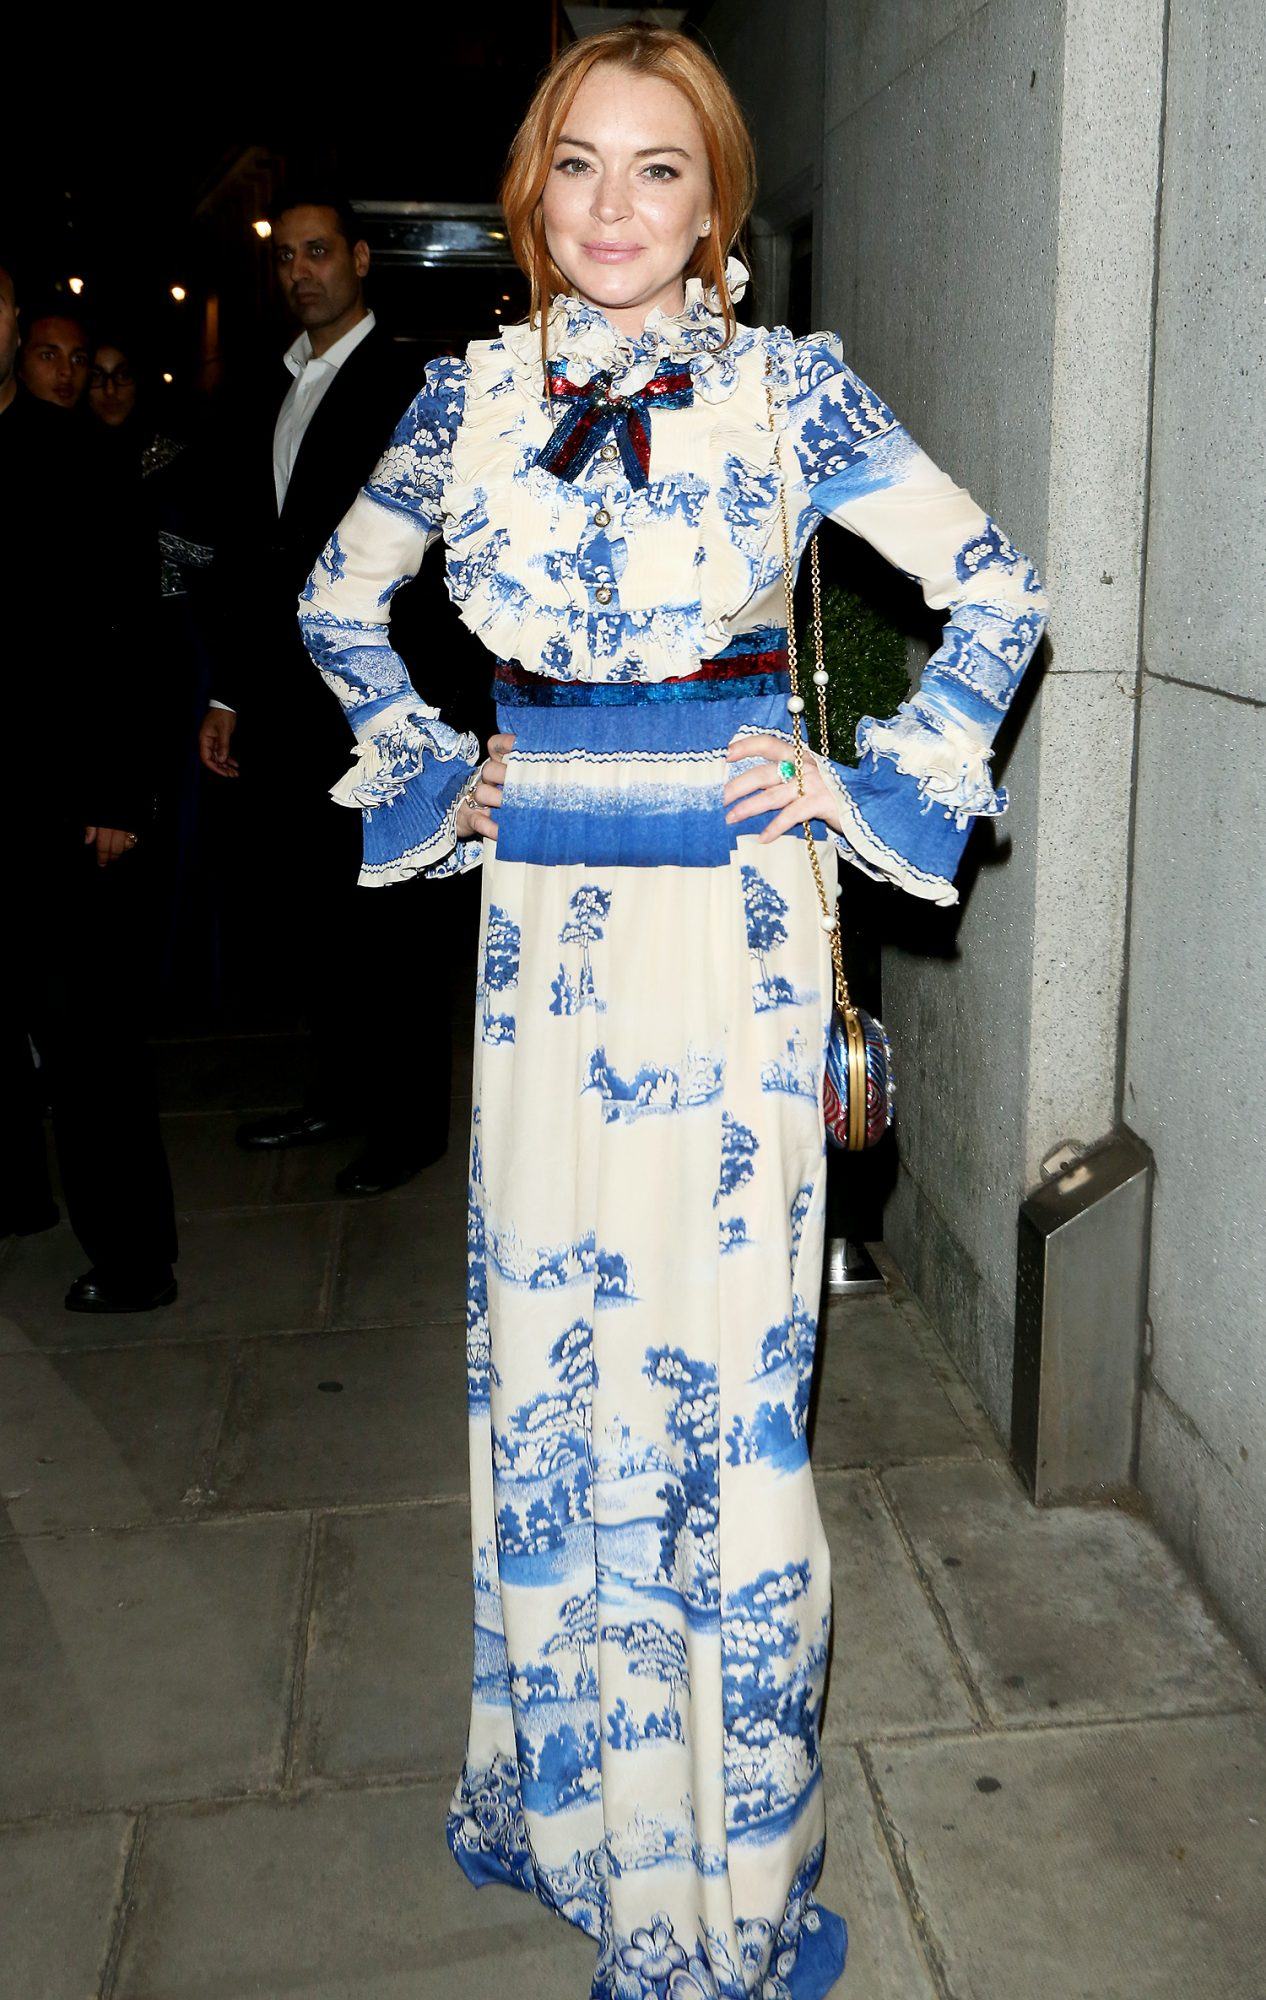 Lindsay Lohan wears �4040 vintage regal Gucci dress to children's charity event in London